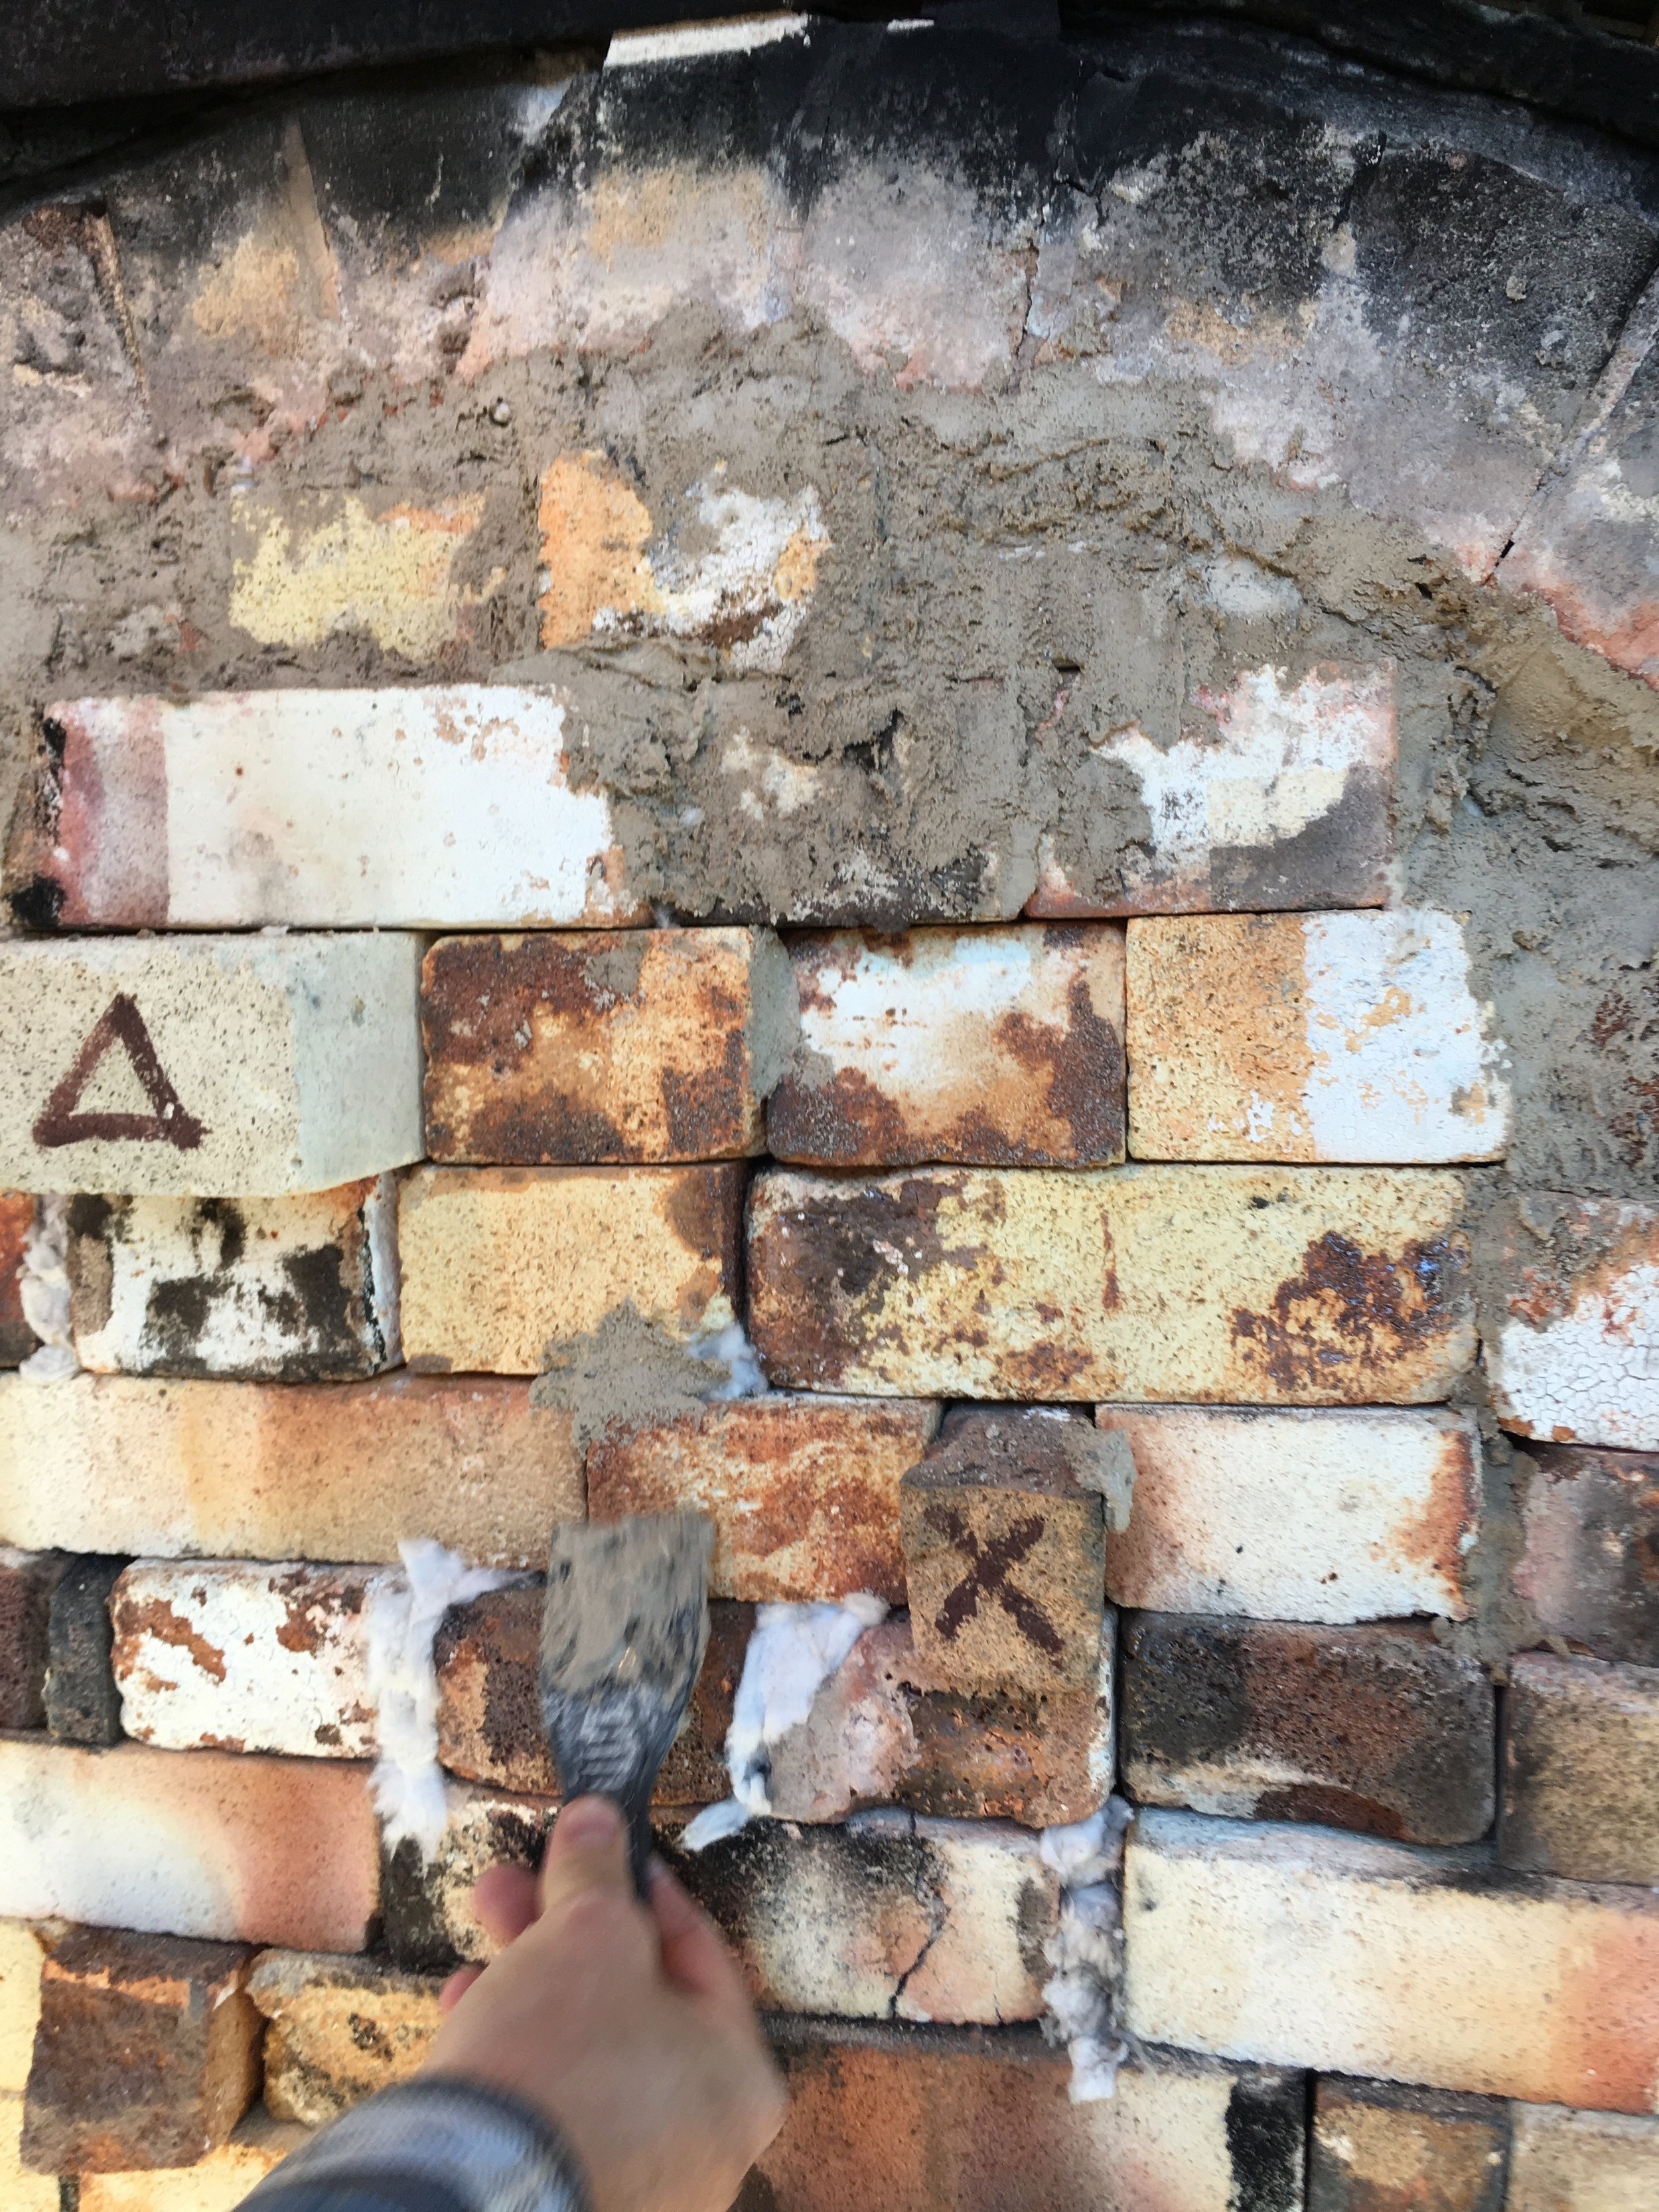 """Muddin'"" the door--we fill any cracks with a clay slurry to ensure heat retention. Some of the door bricks are marked--the triangle on the brick lets us know a cone pack is behind it, and X marks the salt spot!"